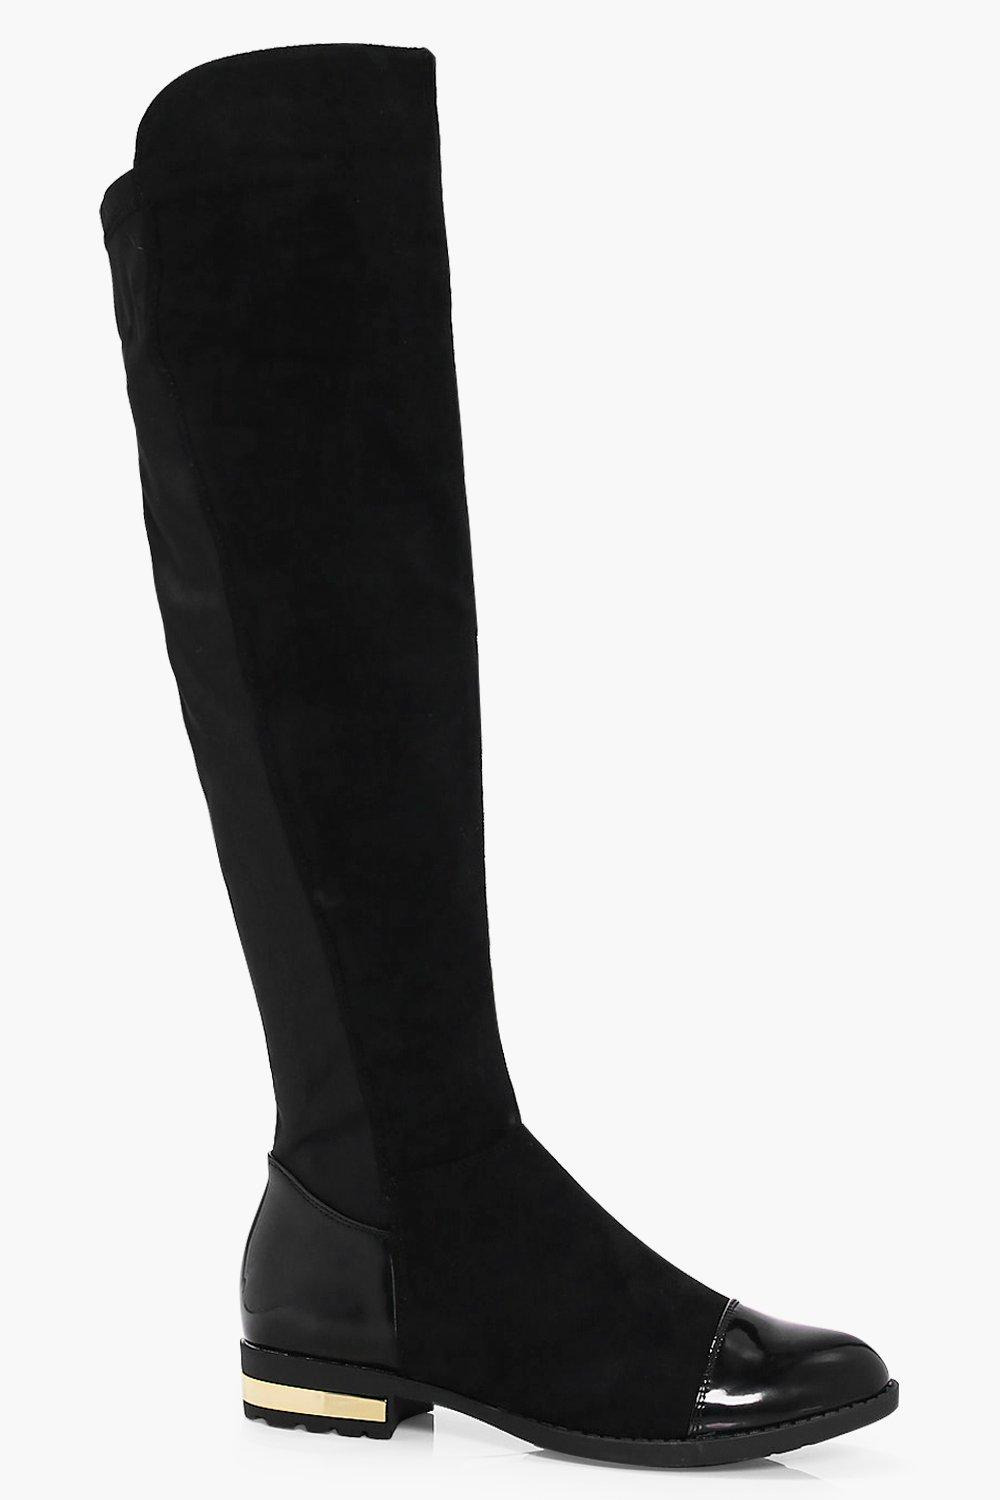 Annabelle Mix Material Over The Knee Boot